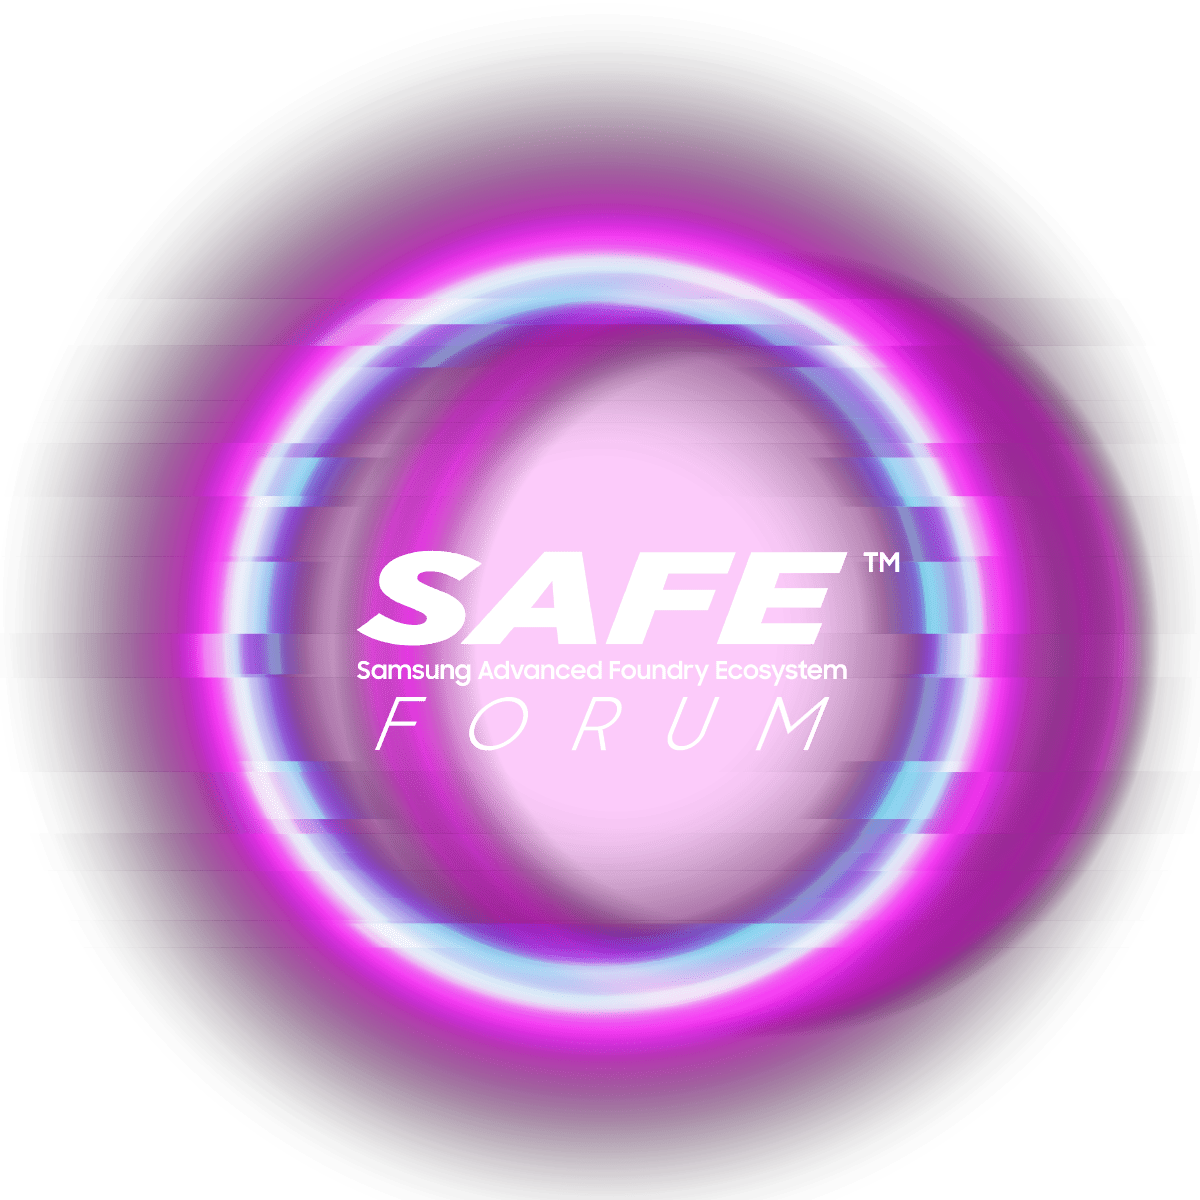 Samsung Advanced Foundry Ecosystem Forum